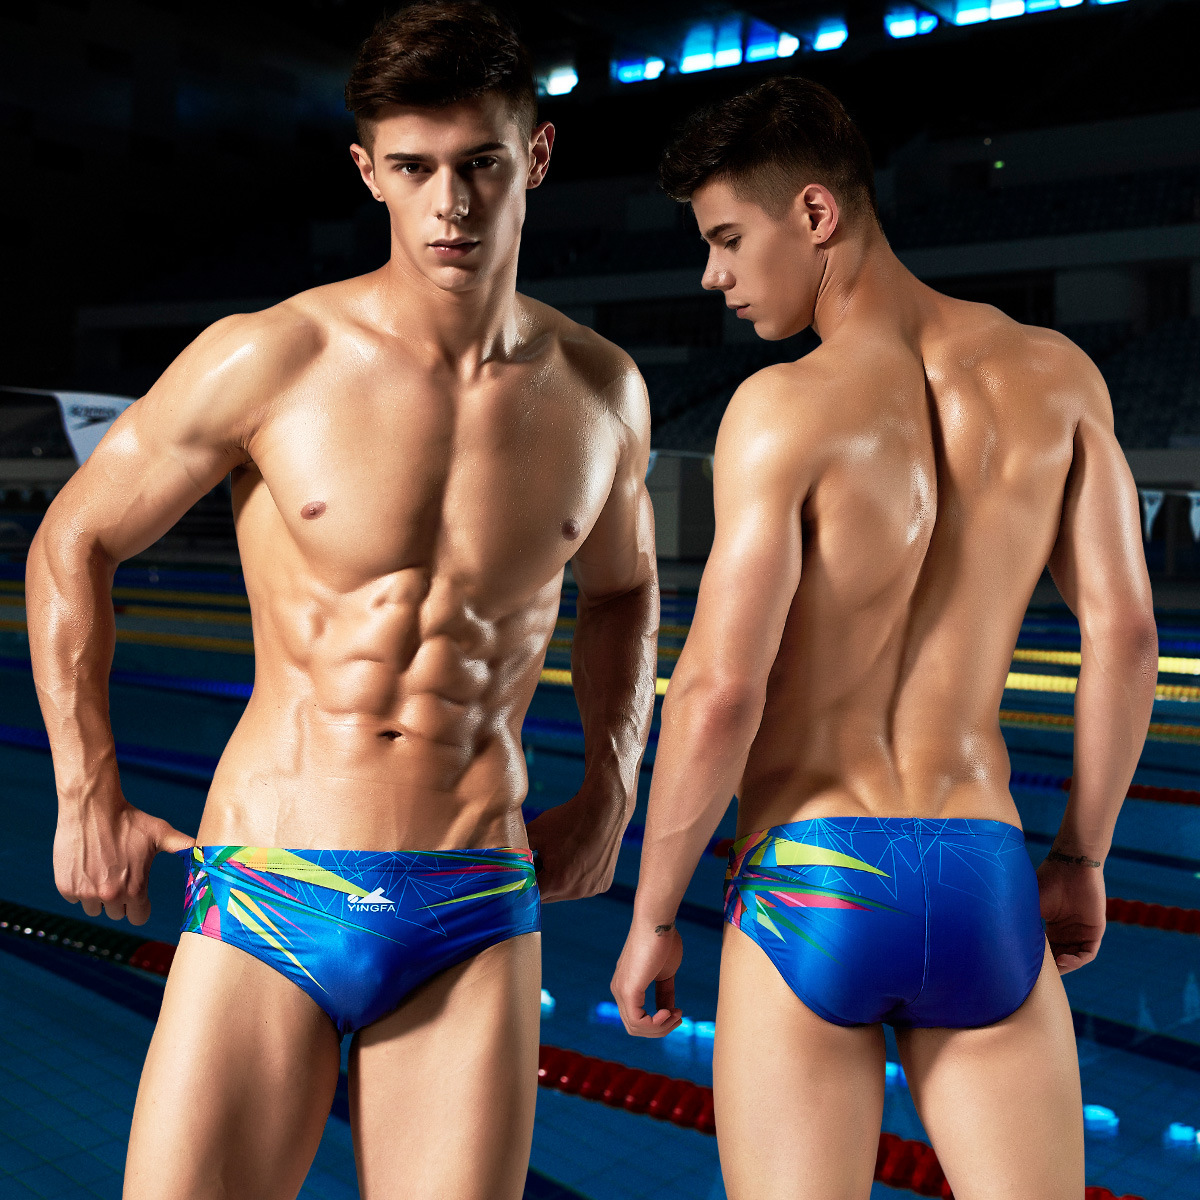 Game Industry Fitness Training Triangular Game Swimming Trunks Competition Athletic-Style Quick-Dry Men Tour Game